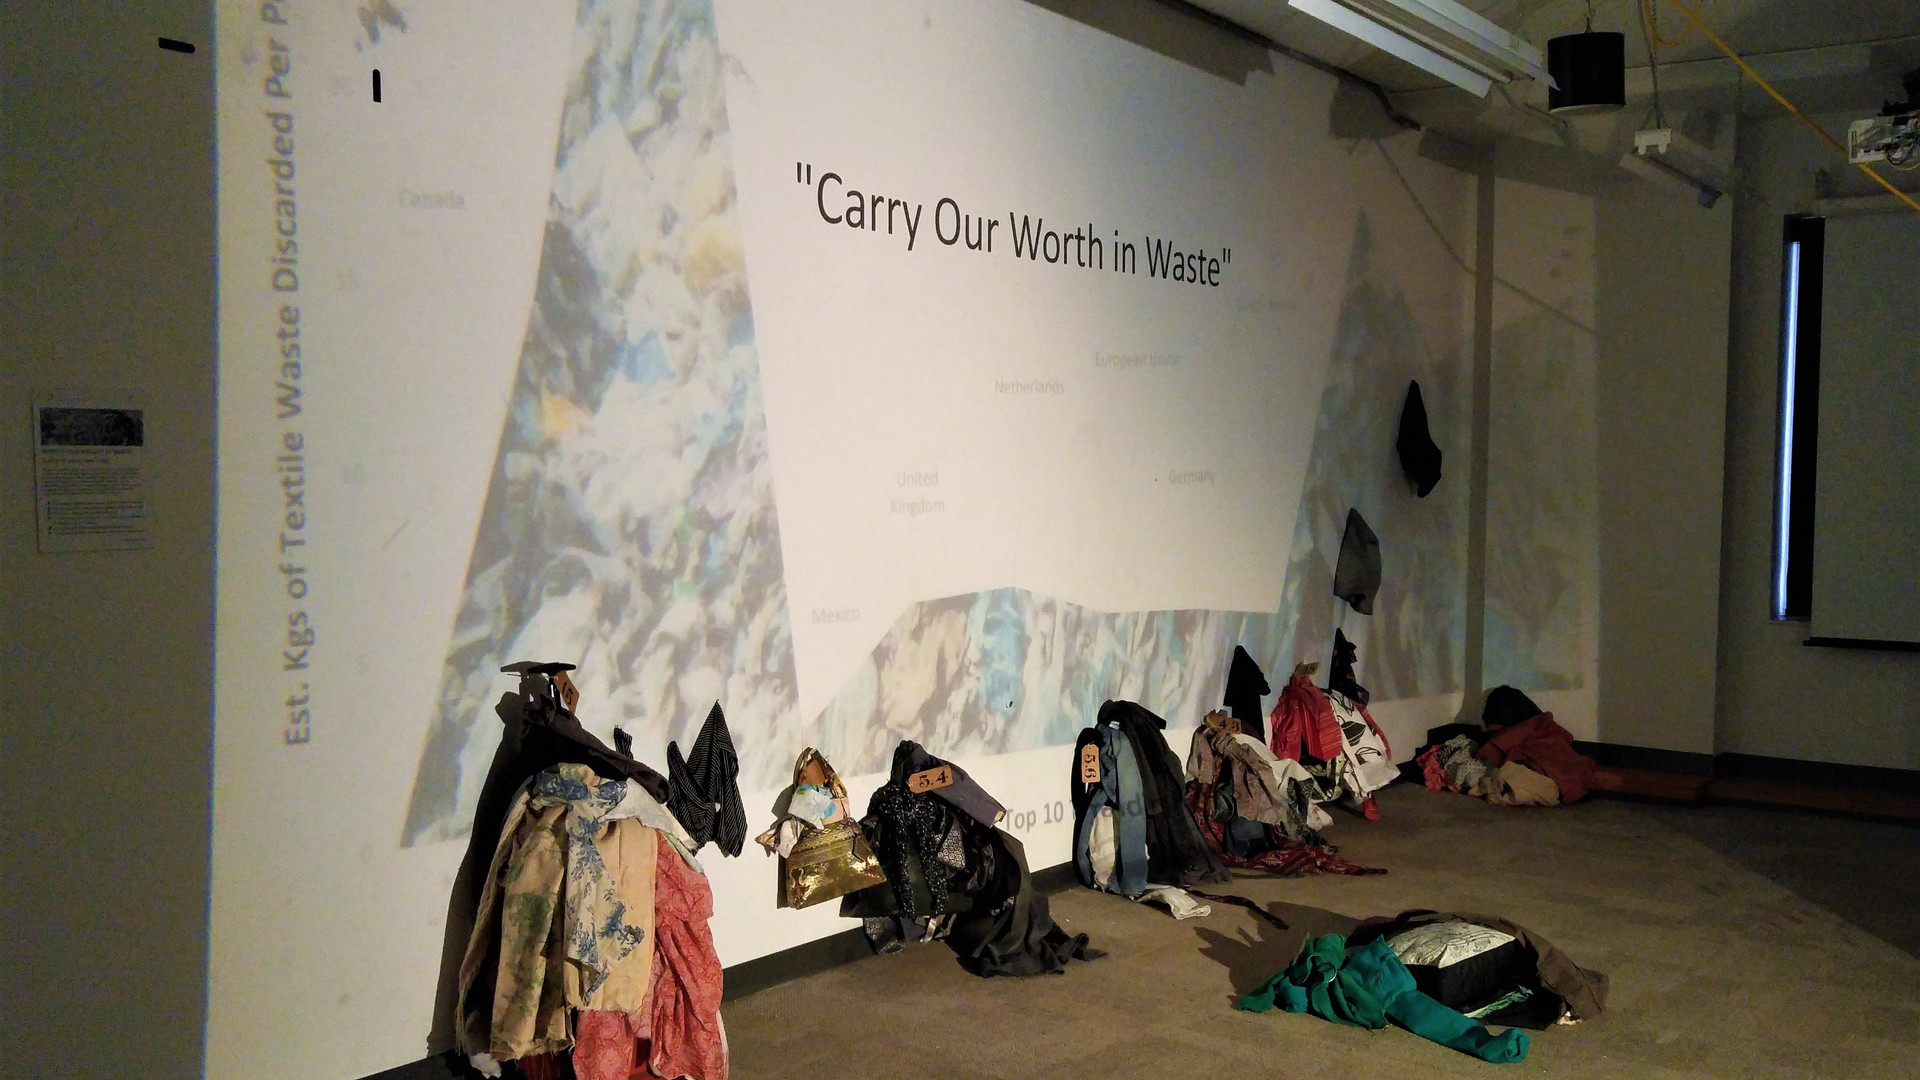 Carry Our Worth in Waste installation.jp